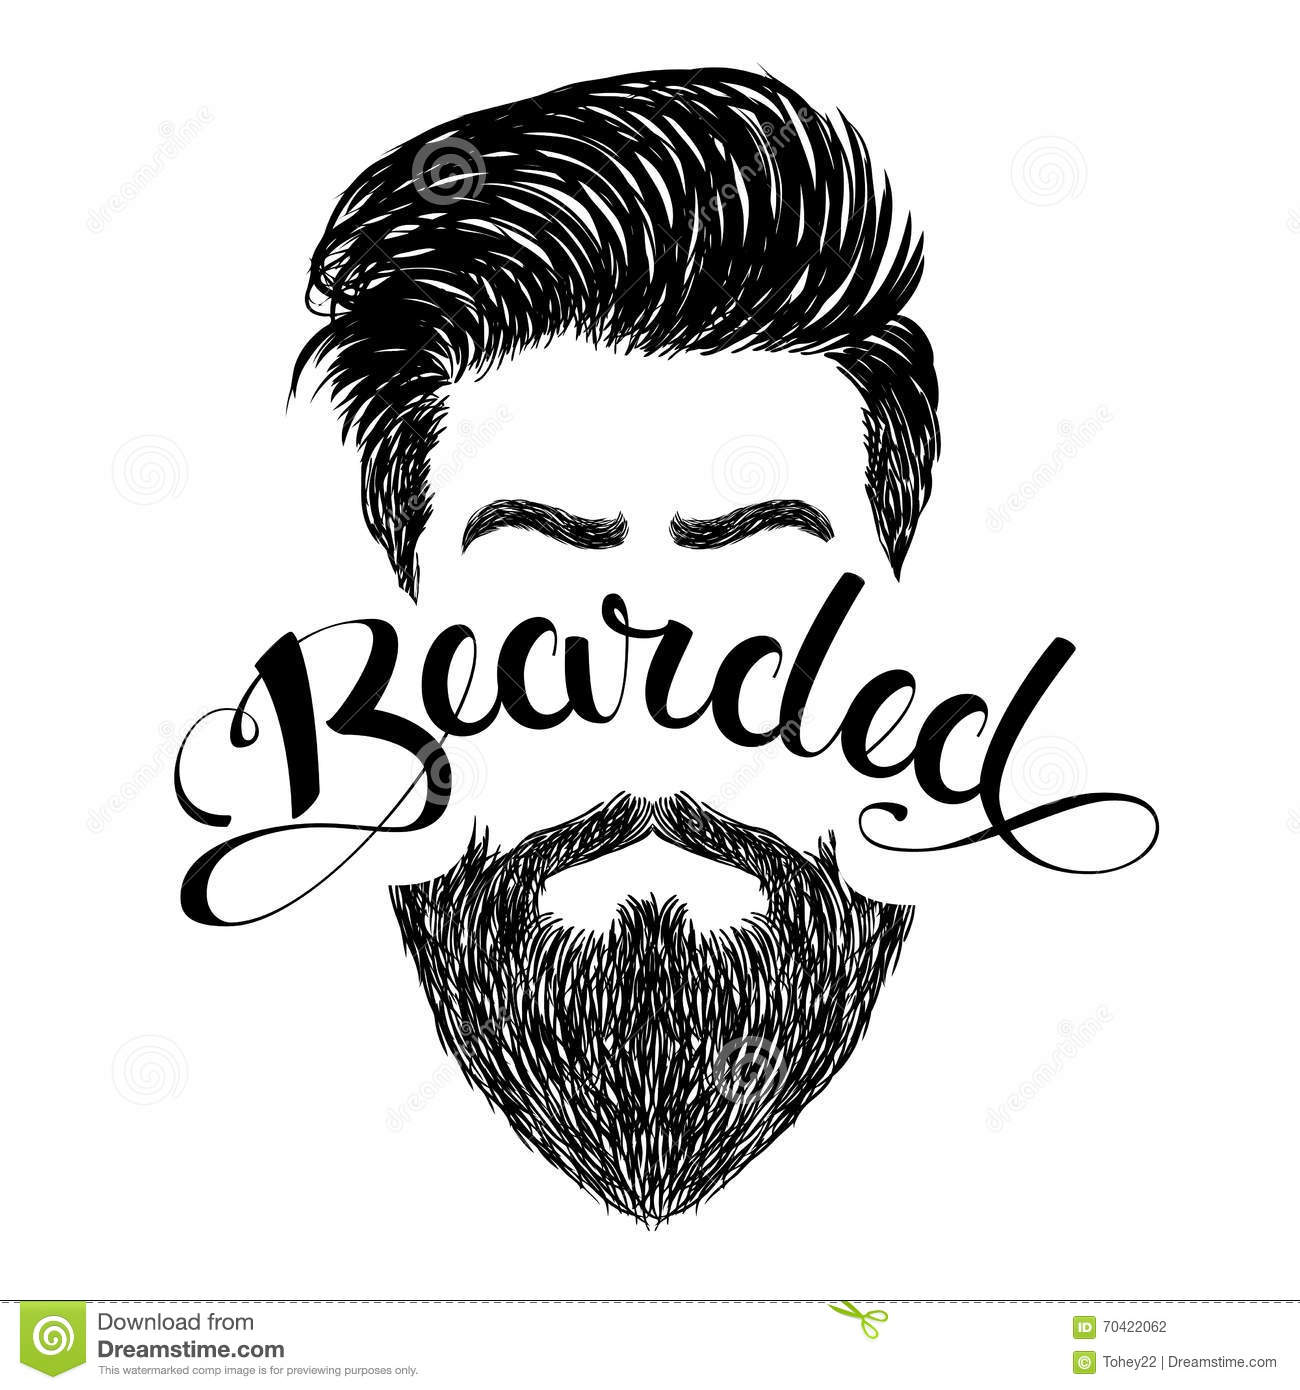 Claw Away Wip 157428843 besides 5201320533 further Stock Illustration Logo Bearded Black Barbershop Lettering Word Hand Drawn Haircuts Beard Isolated Vector Illustration White Image70422062 together with 426575395925958512 moreover LineFreehand en. on hand drawing